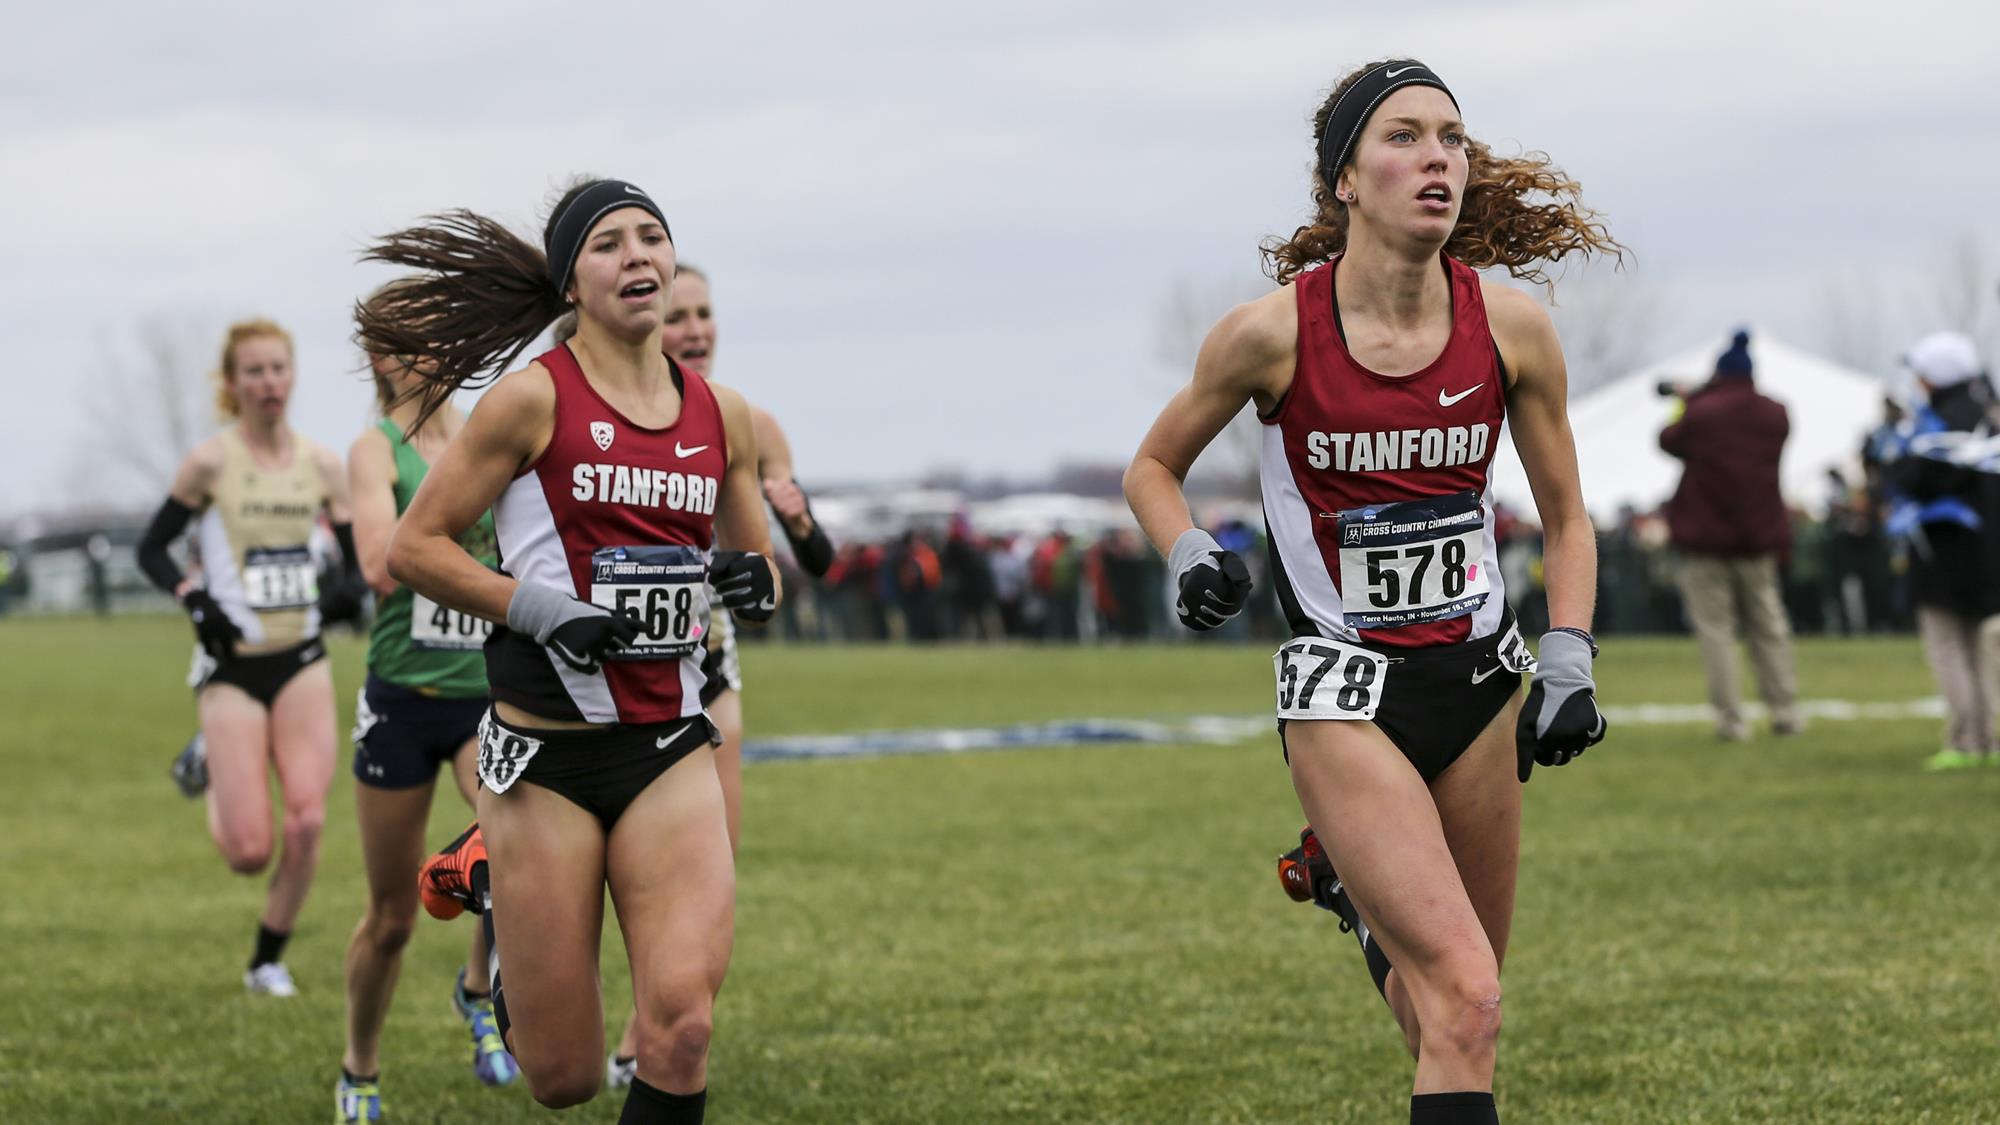 Christina Aragon Cross Country Stanford University Athletics